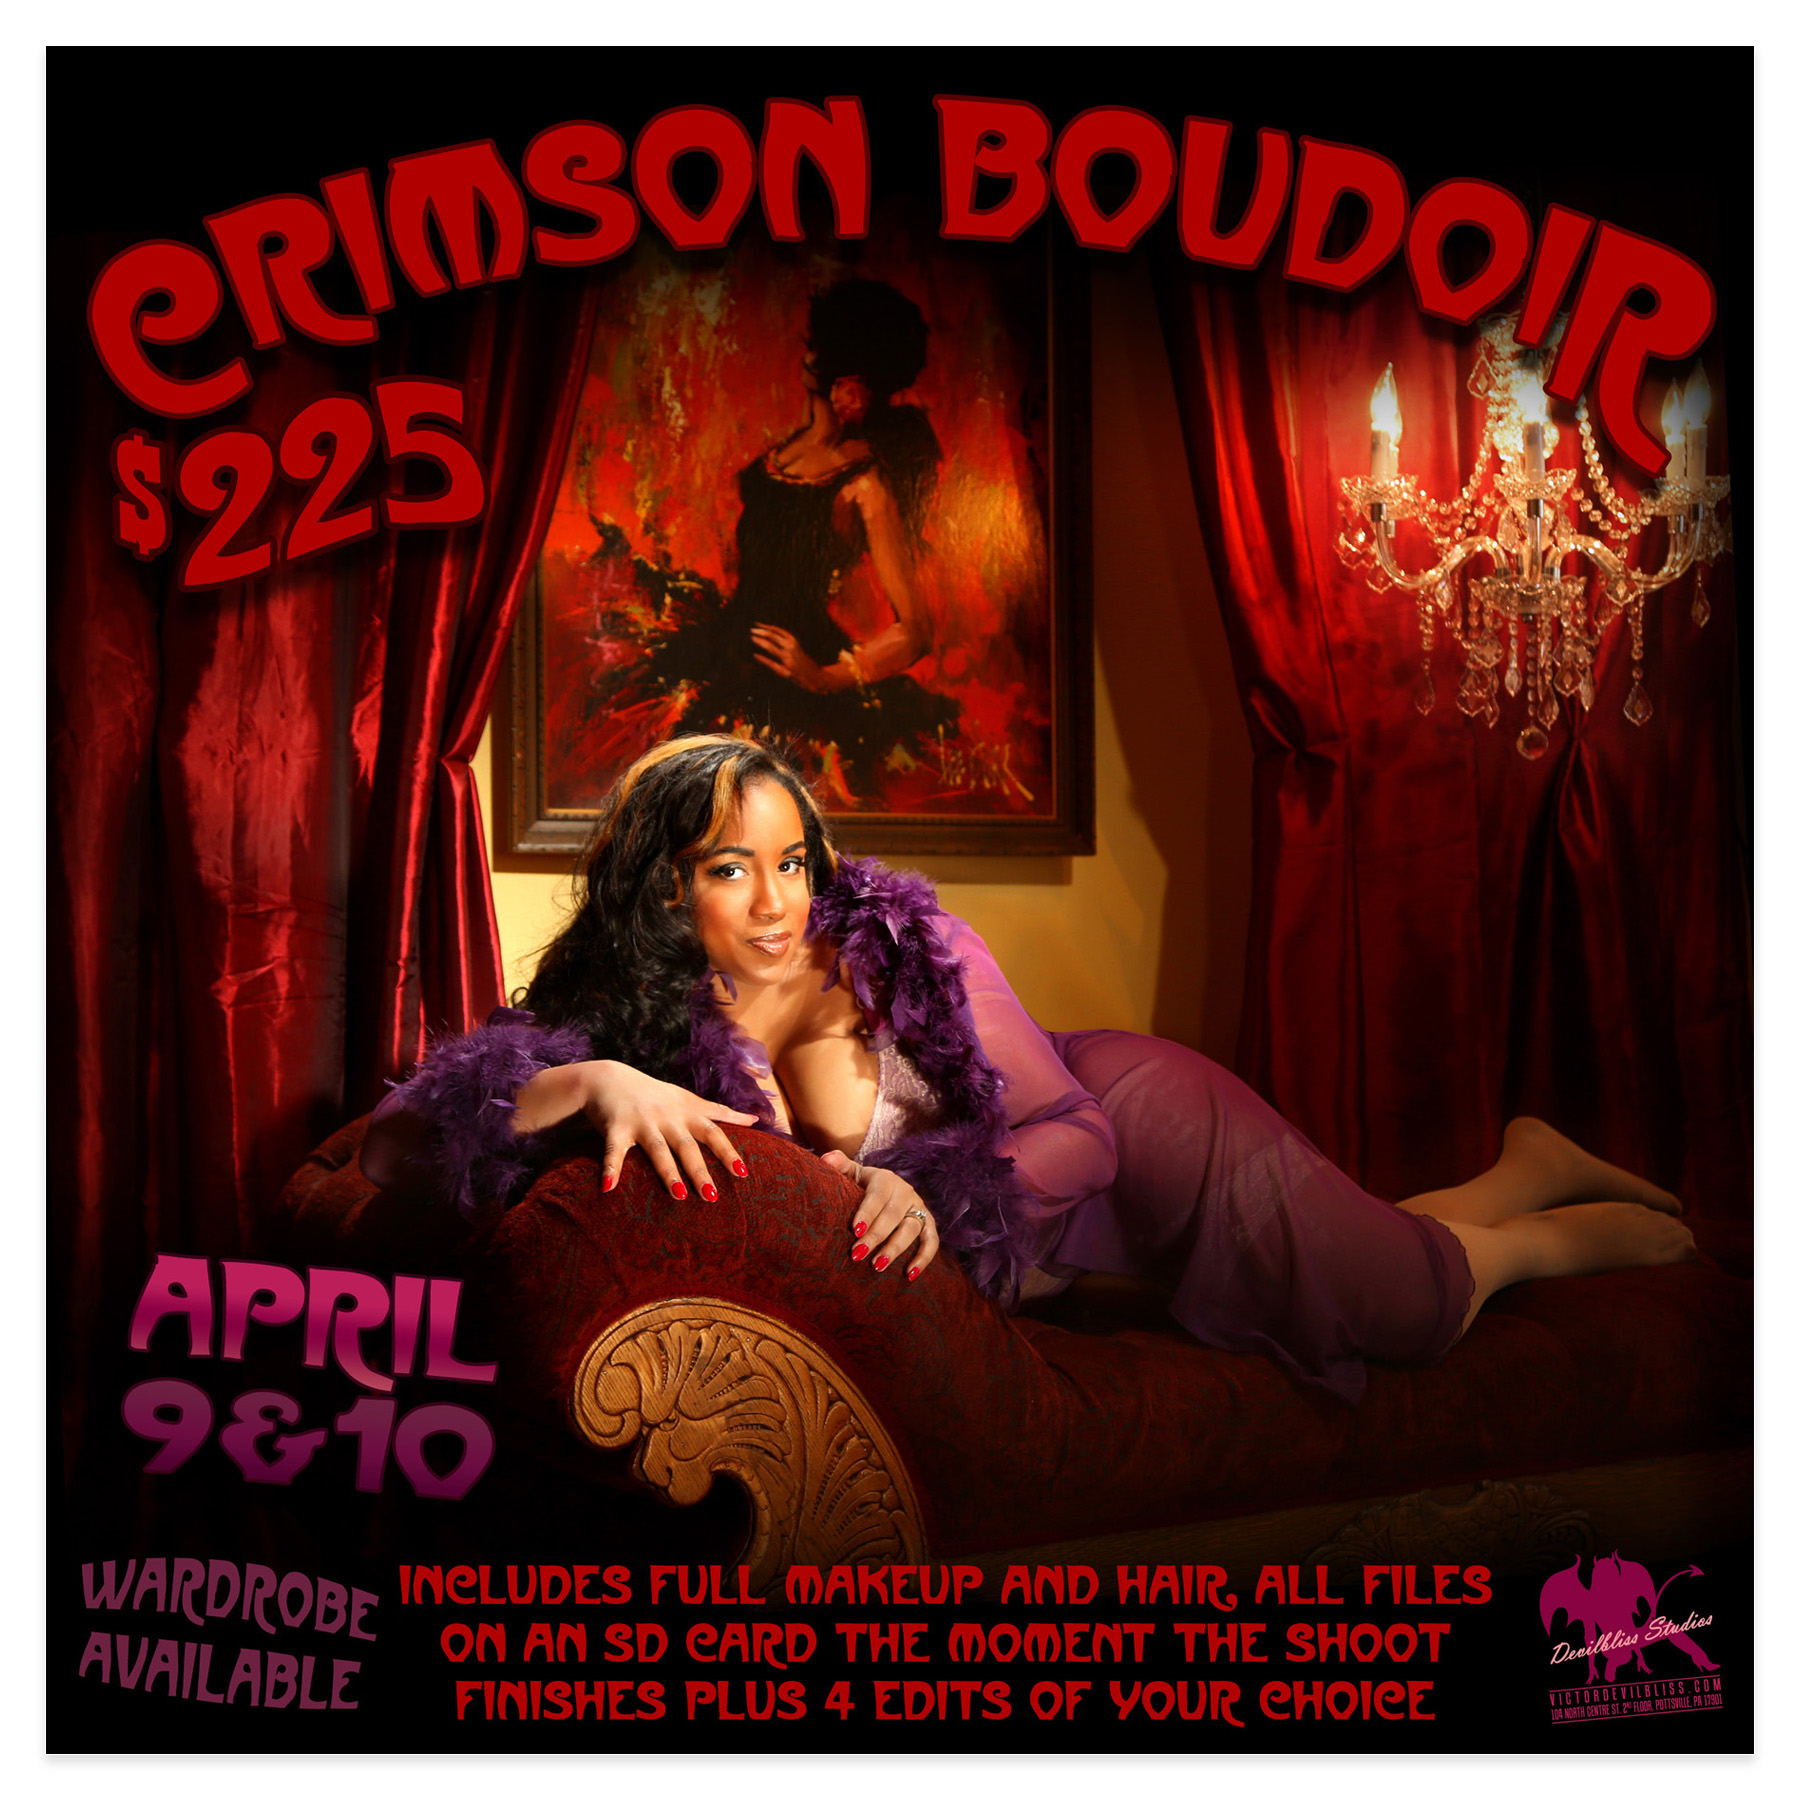 CrimsonBoudoir